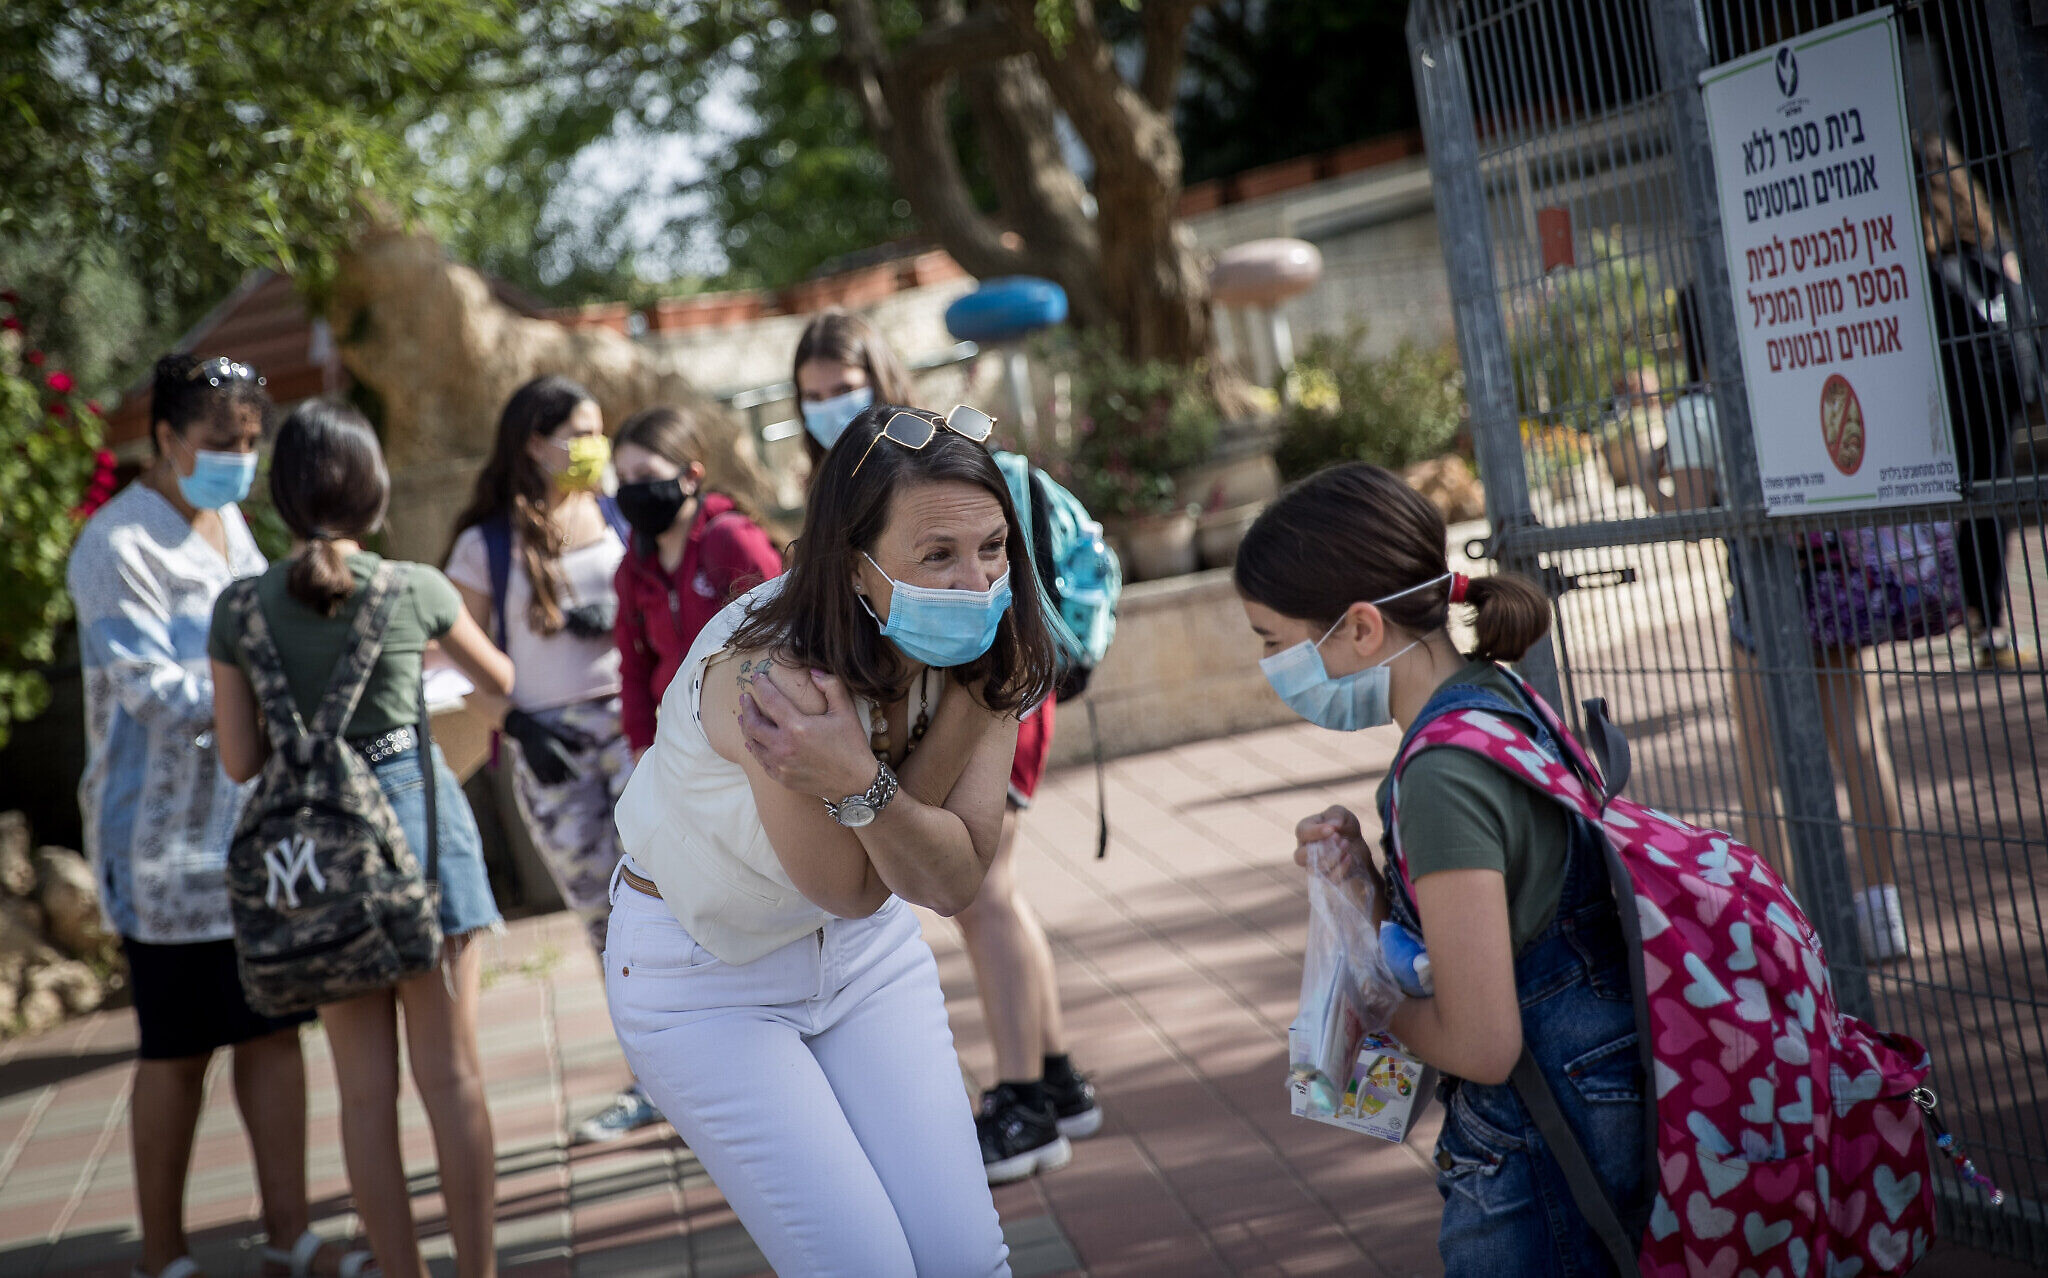 My hot ass teacher Due To Heat Wave Israel Temporarily Lifts Mask Requirement In Schools Outdoors The Times Of Israel